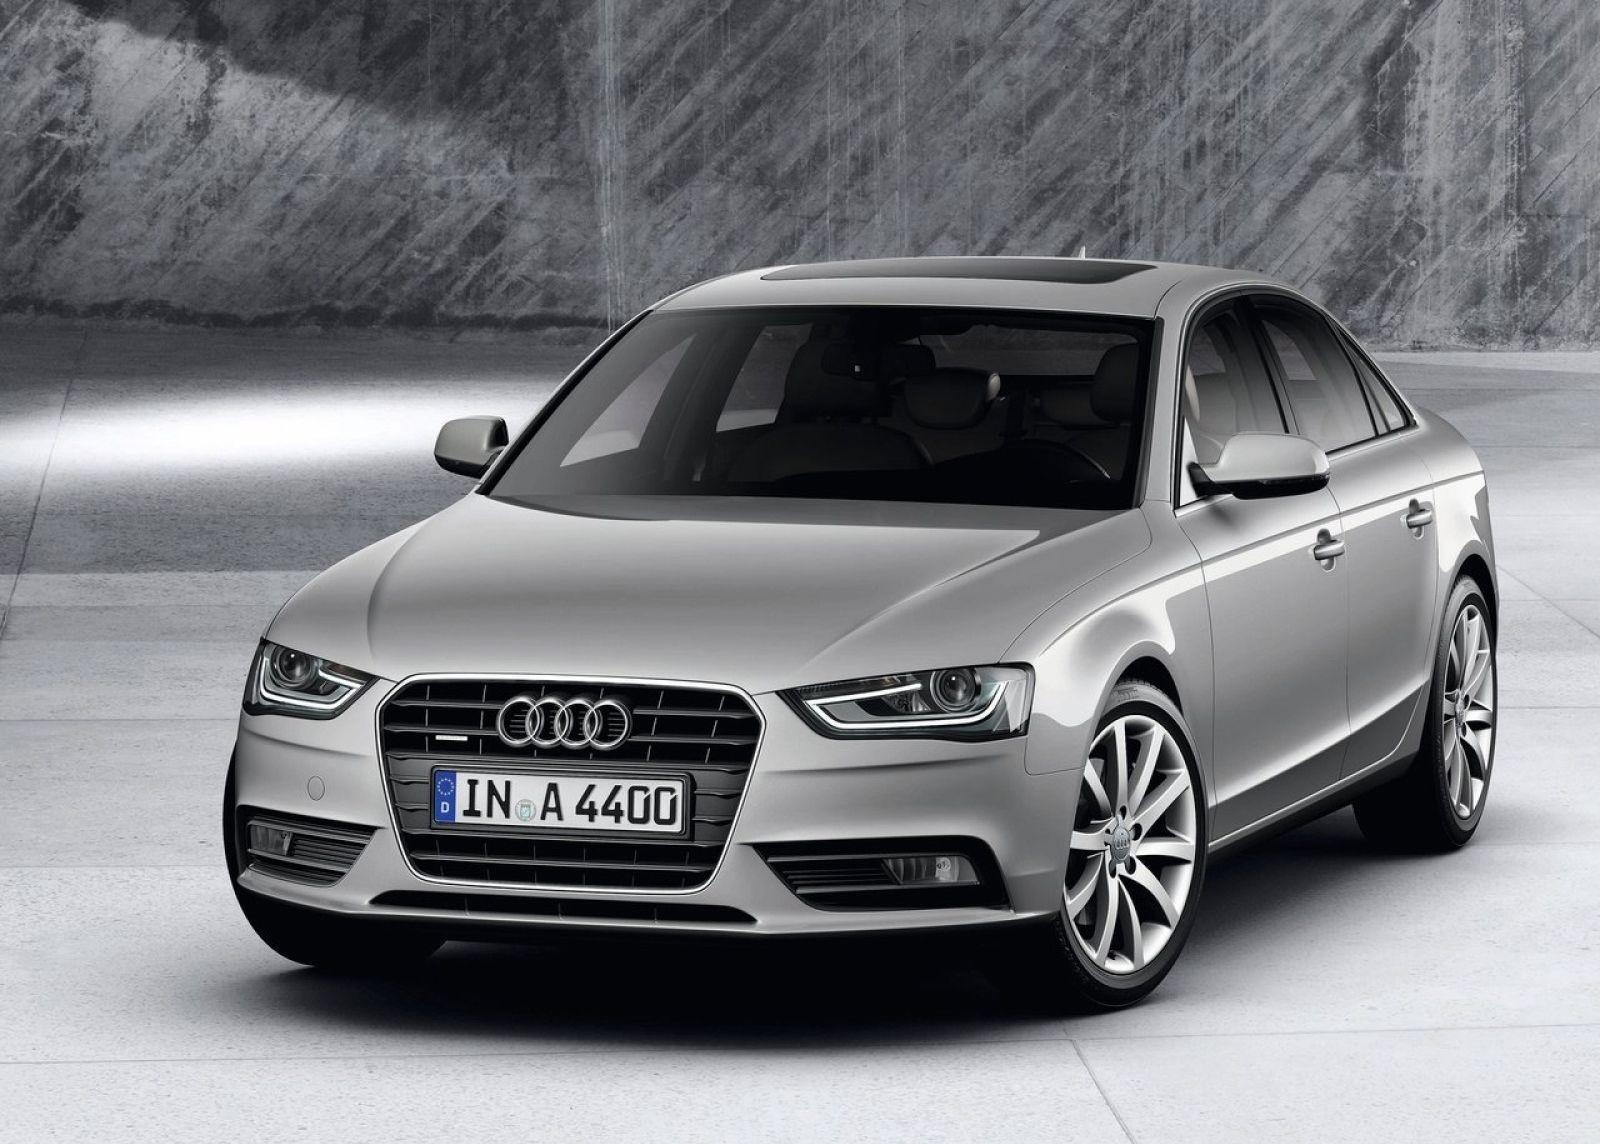 2013 Audi A4 Wallpapers